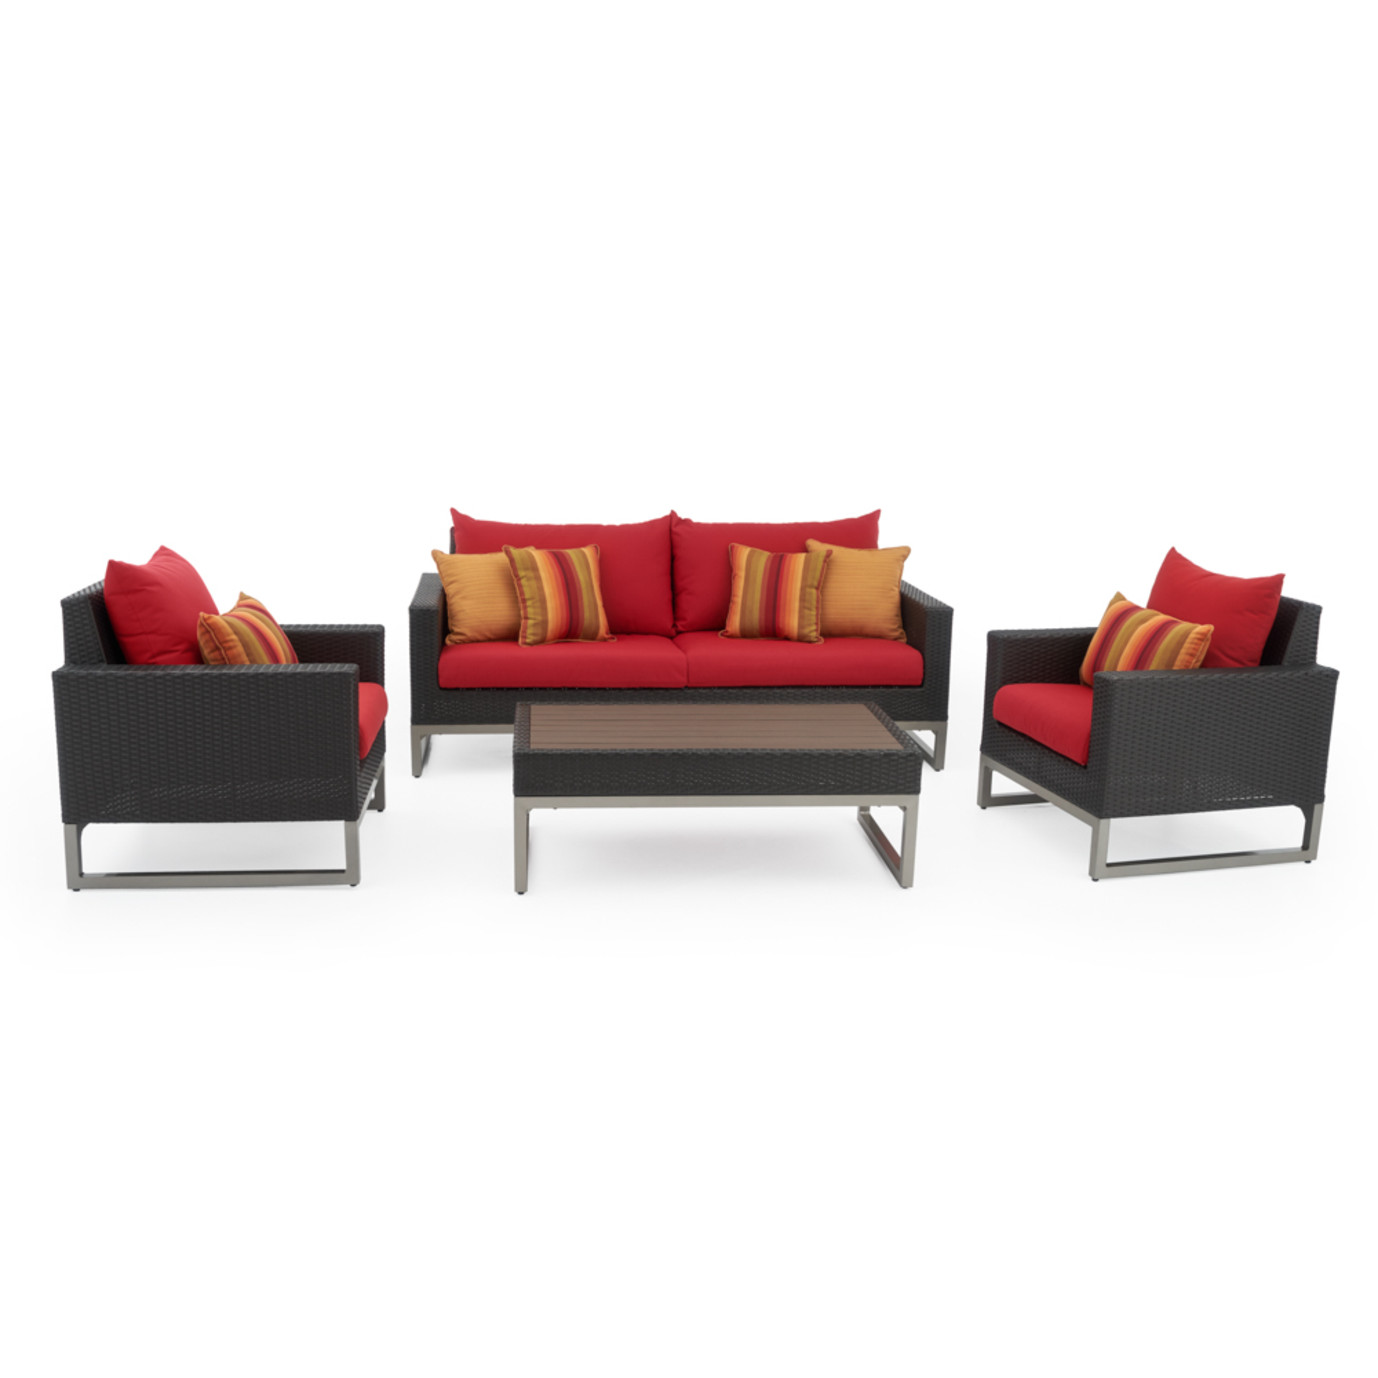 Milo™ Espresso 4 Piece Seating Set - Sunset Red